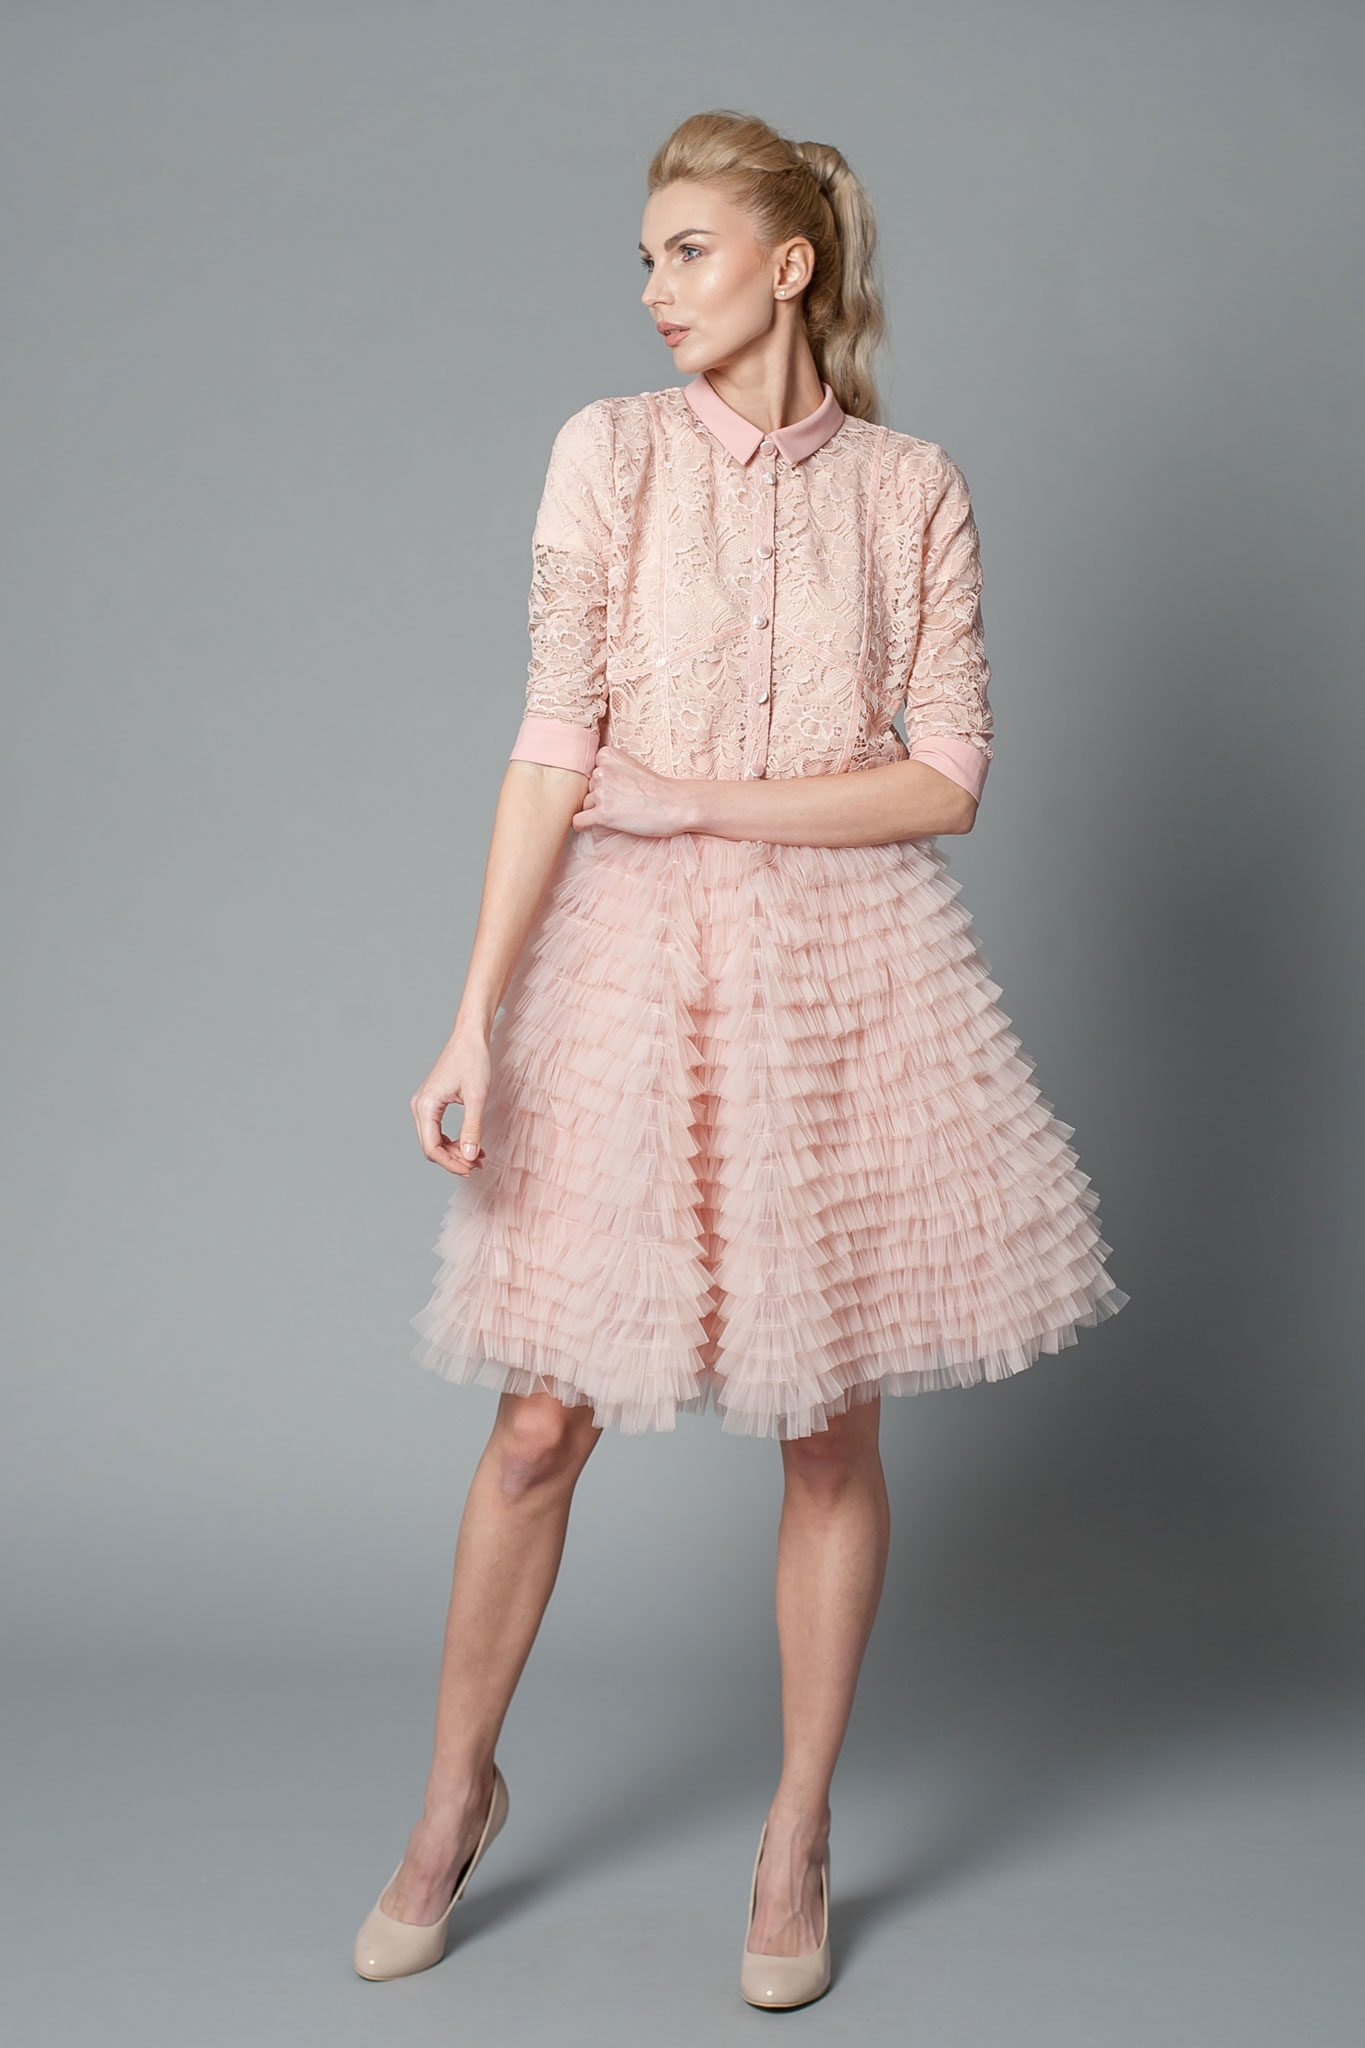 crepe mother of the bride dress with layered skirt